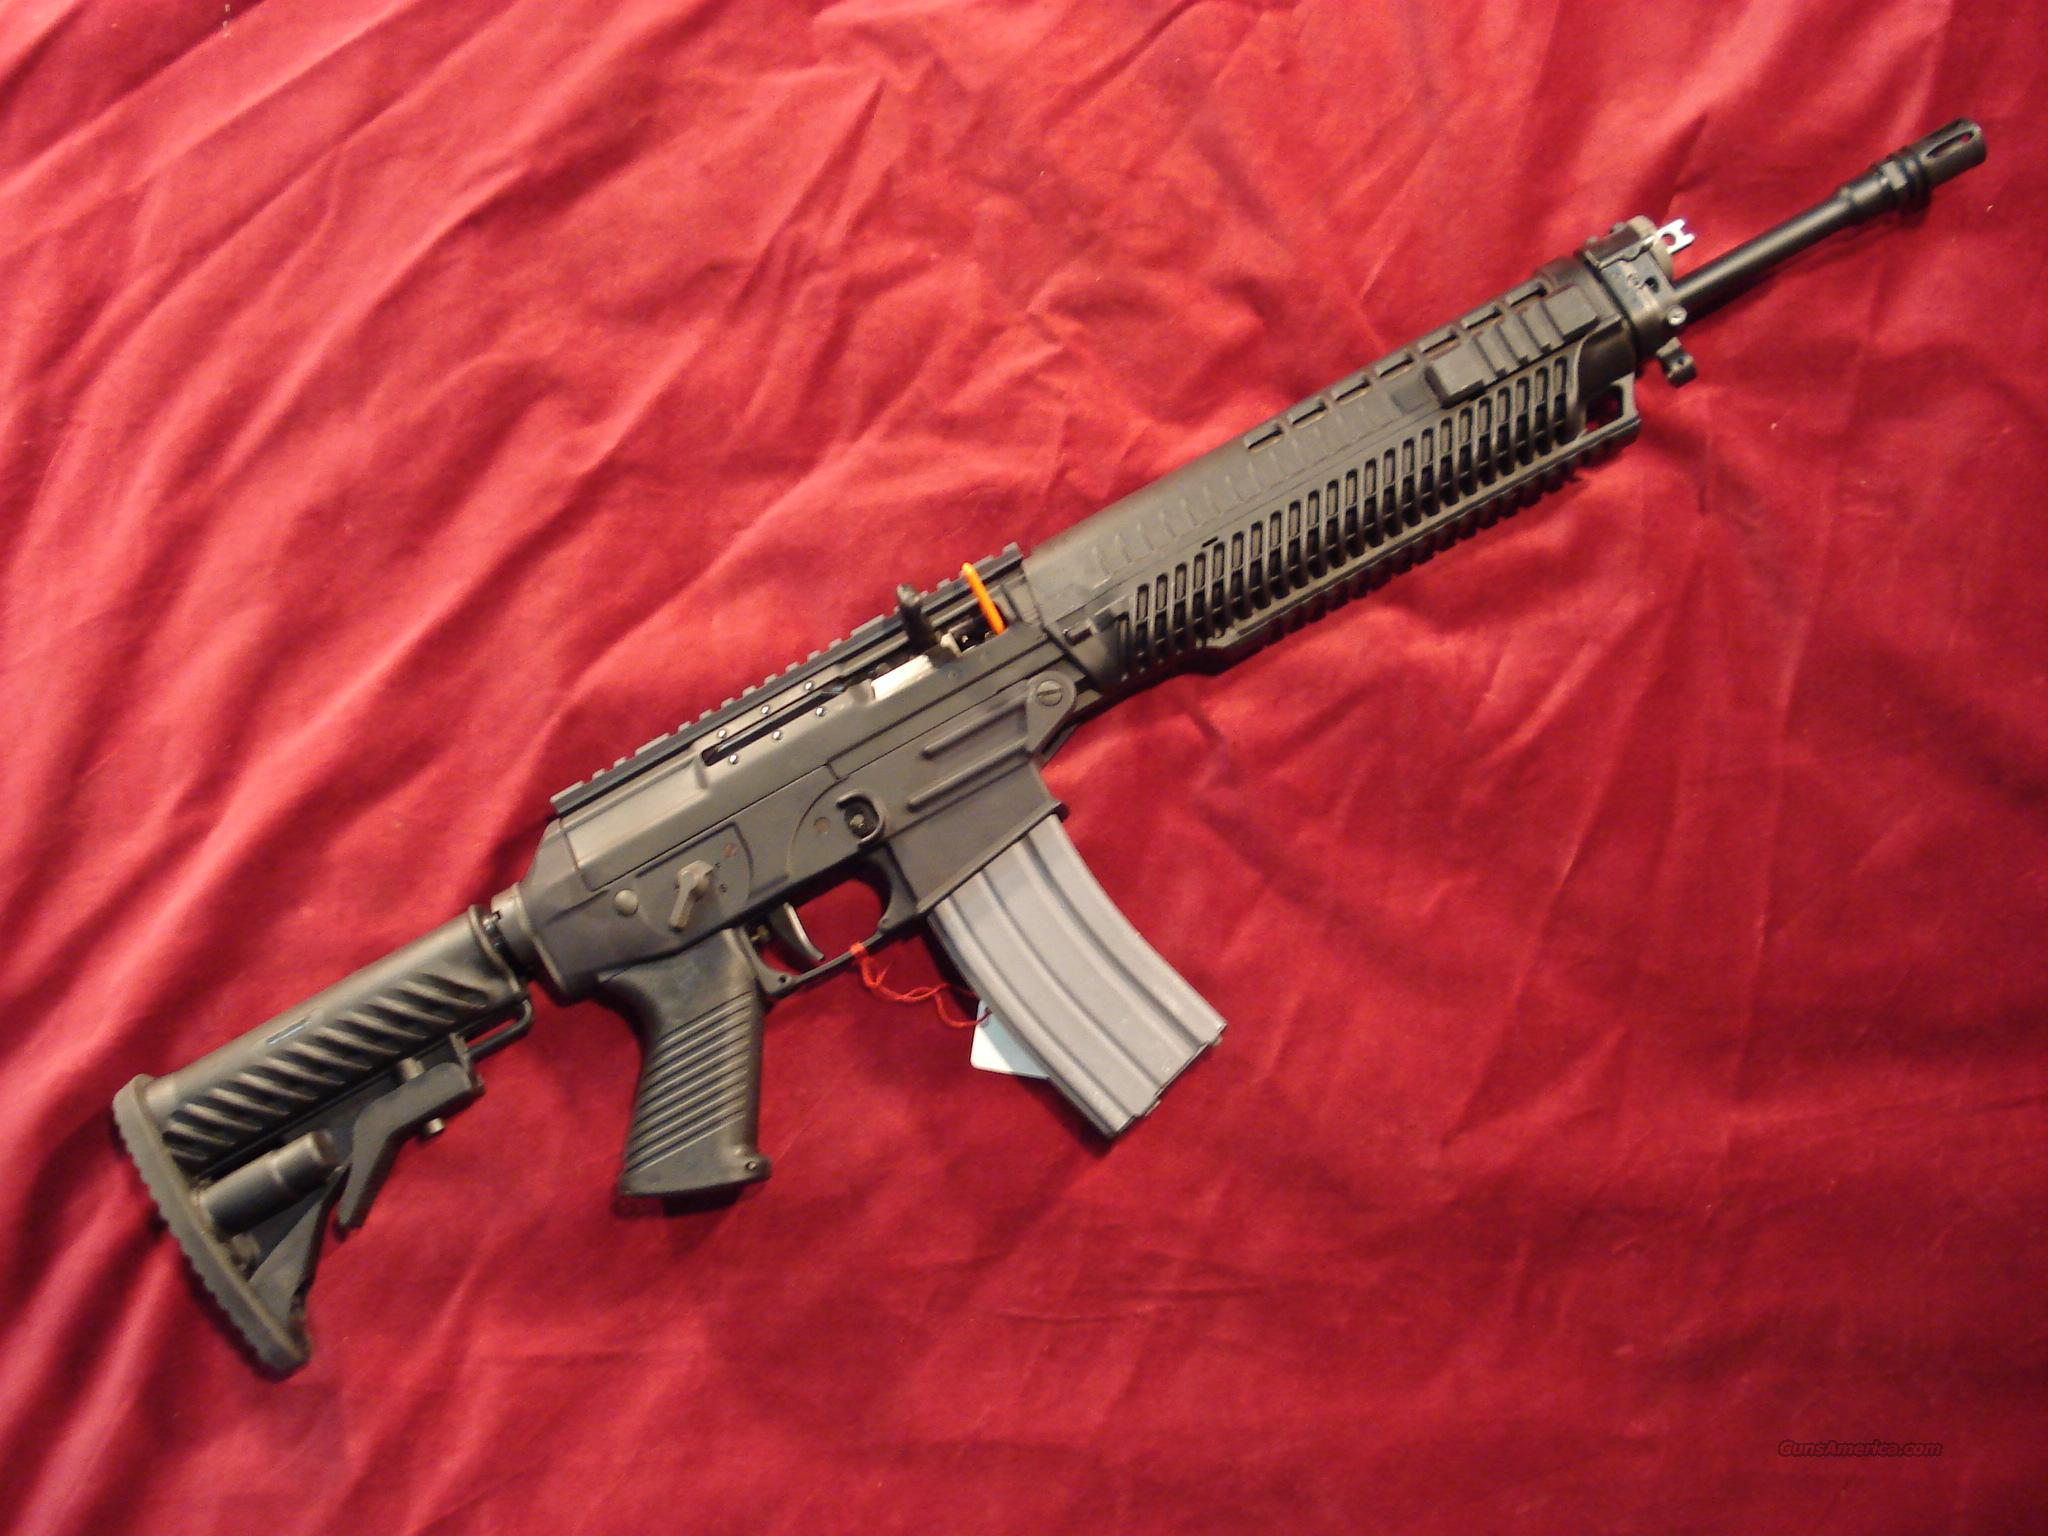 SIGARMS 556 CARBINE RIFLE NEW  Guns > Rifles > Sigarms Rifles